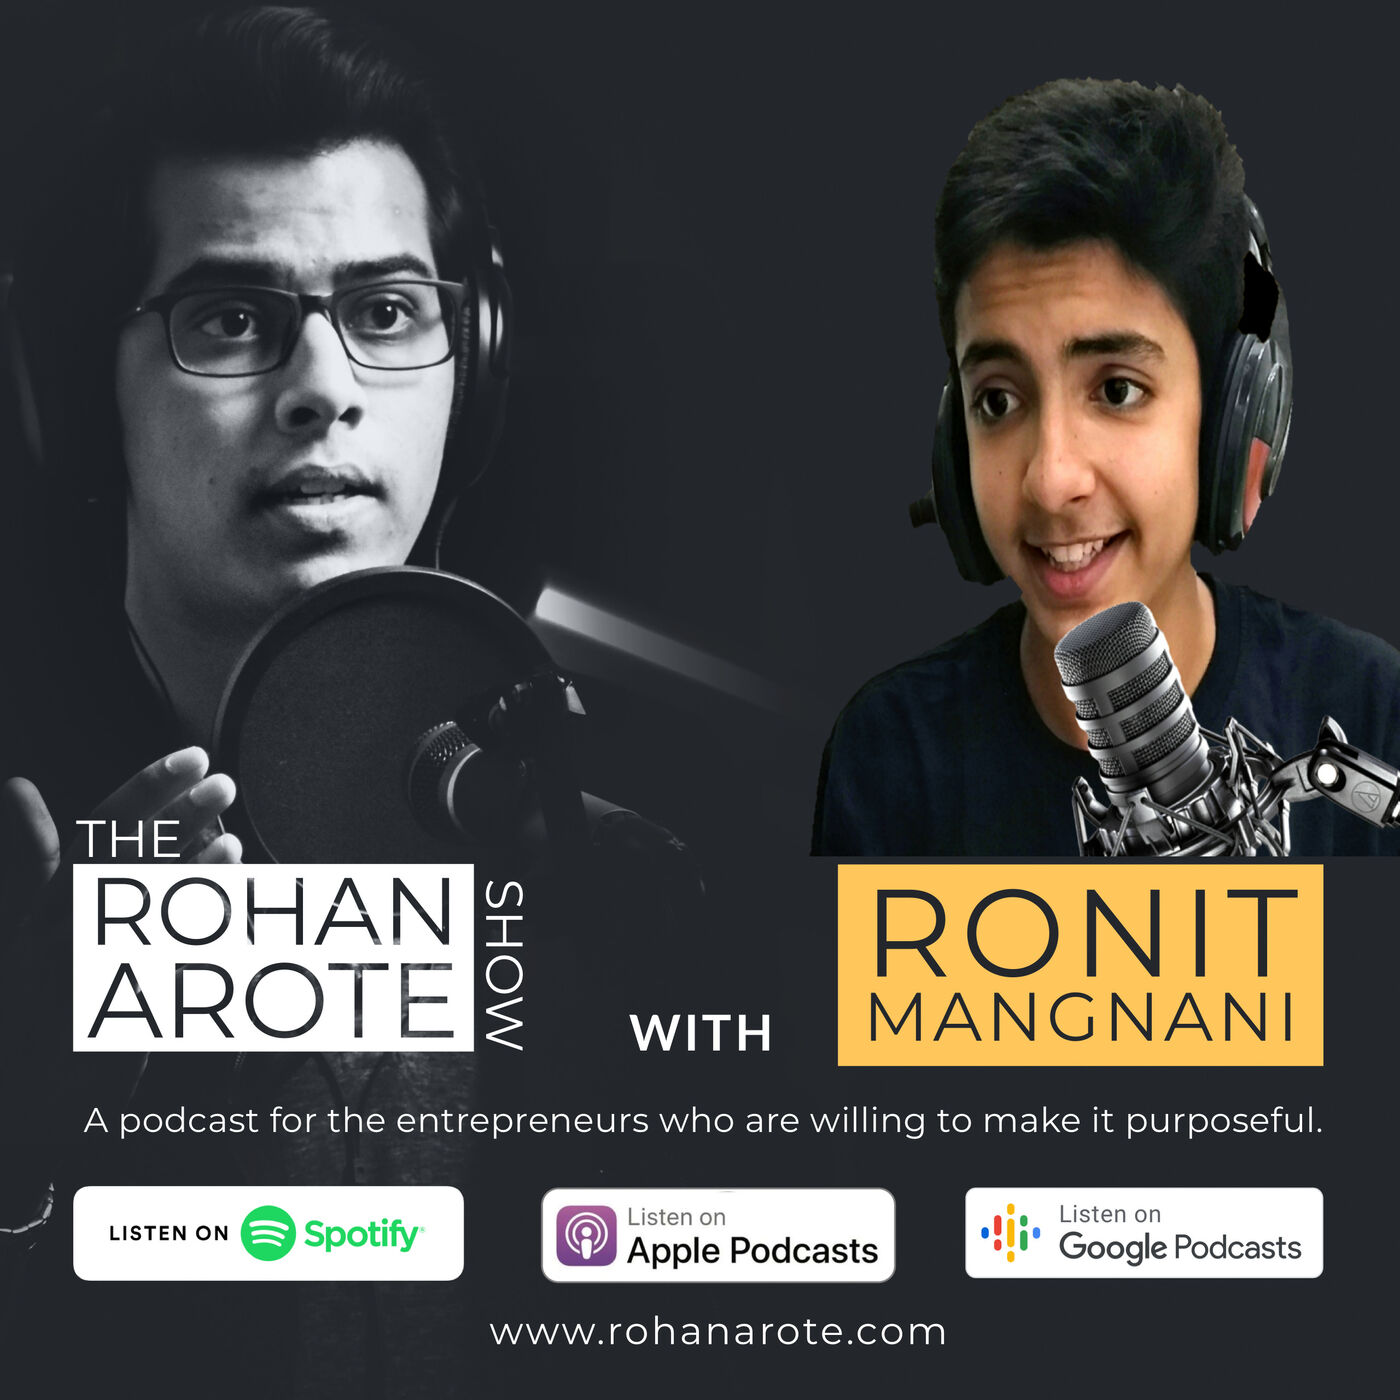 An interview with the young: Ronit Mangnani